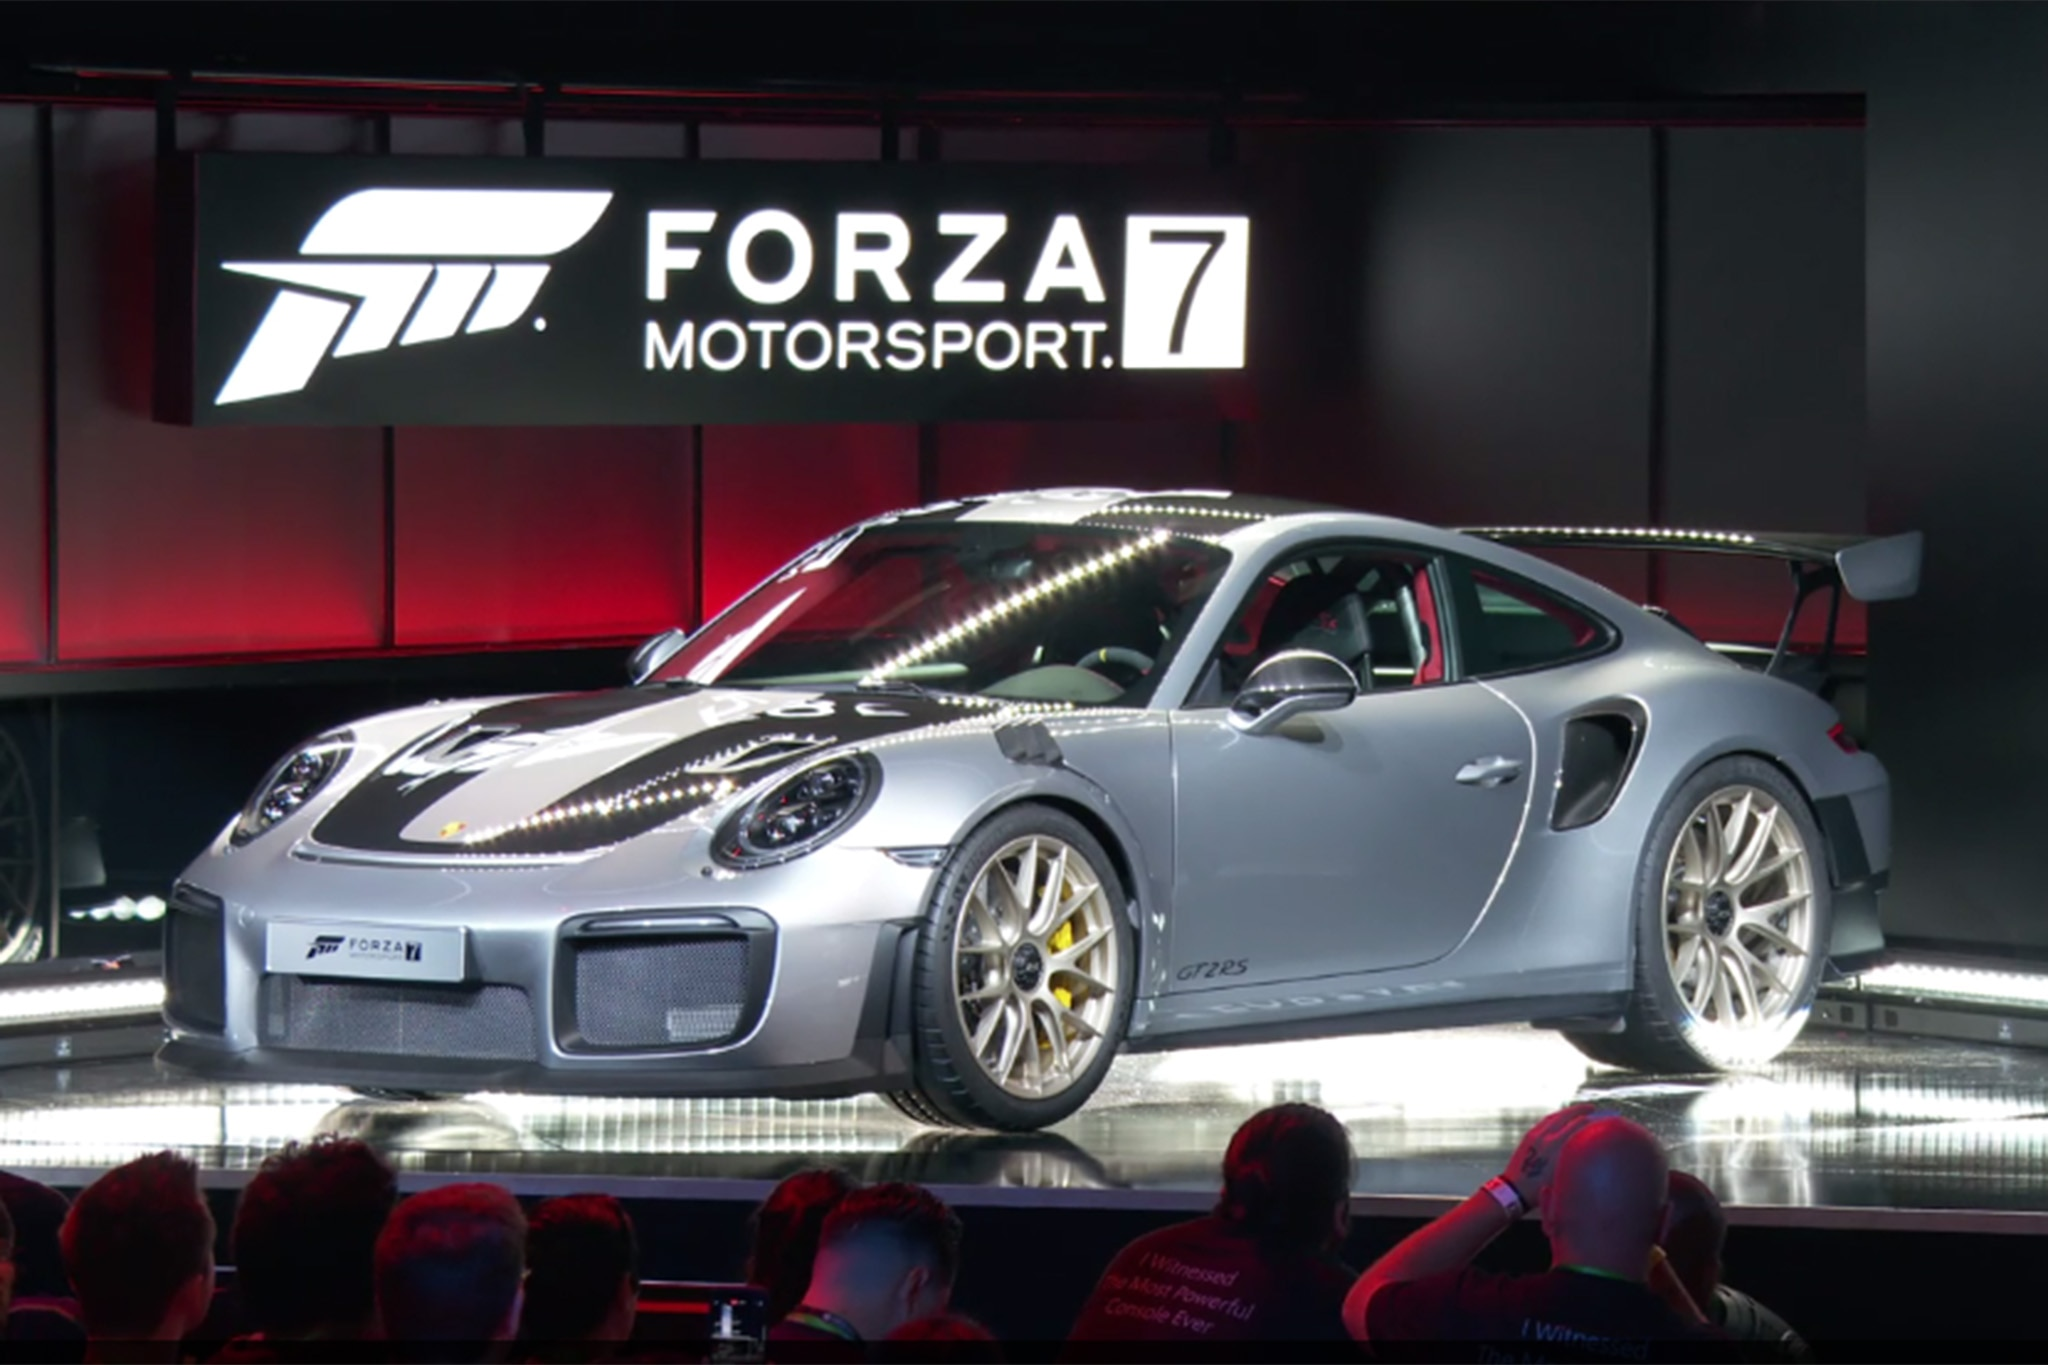 2018-Porsche-911-GT2-RS-E3-Front-Three-Quarters Interesting Porsche 911 Gt2 and Gt3 Cars Trend